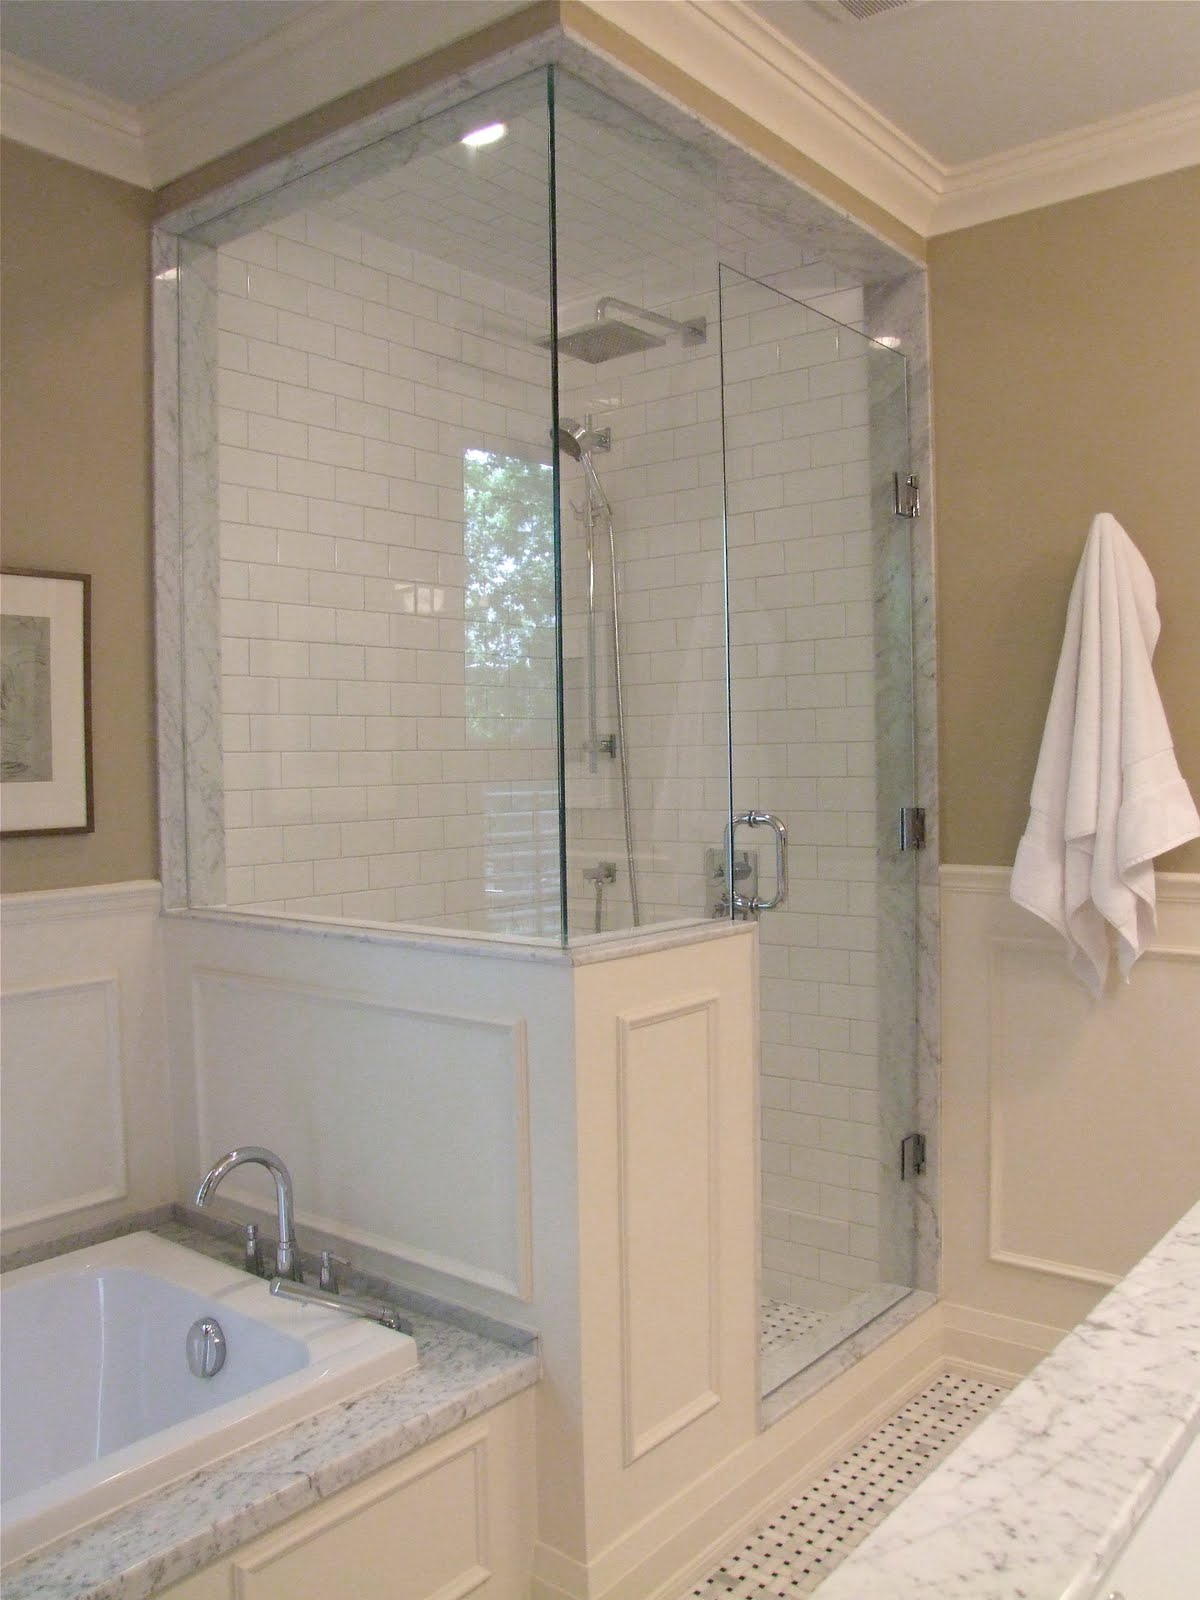 CREED: After: E-Design Bathroom Project Part 2